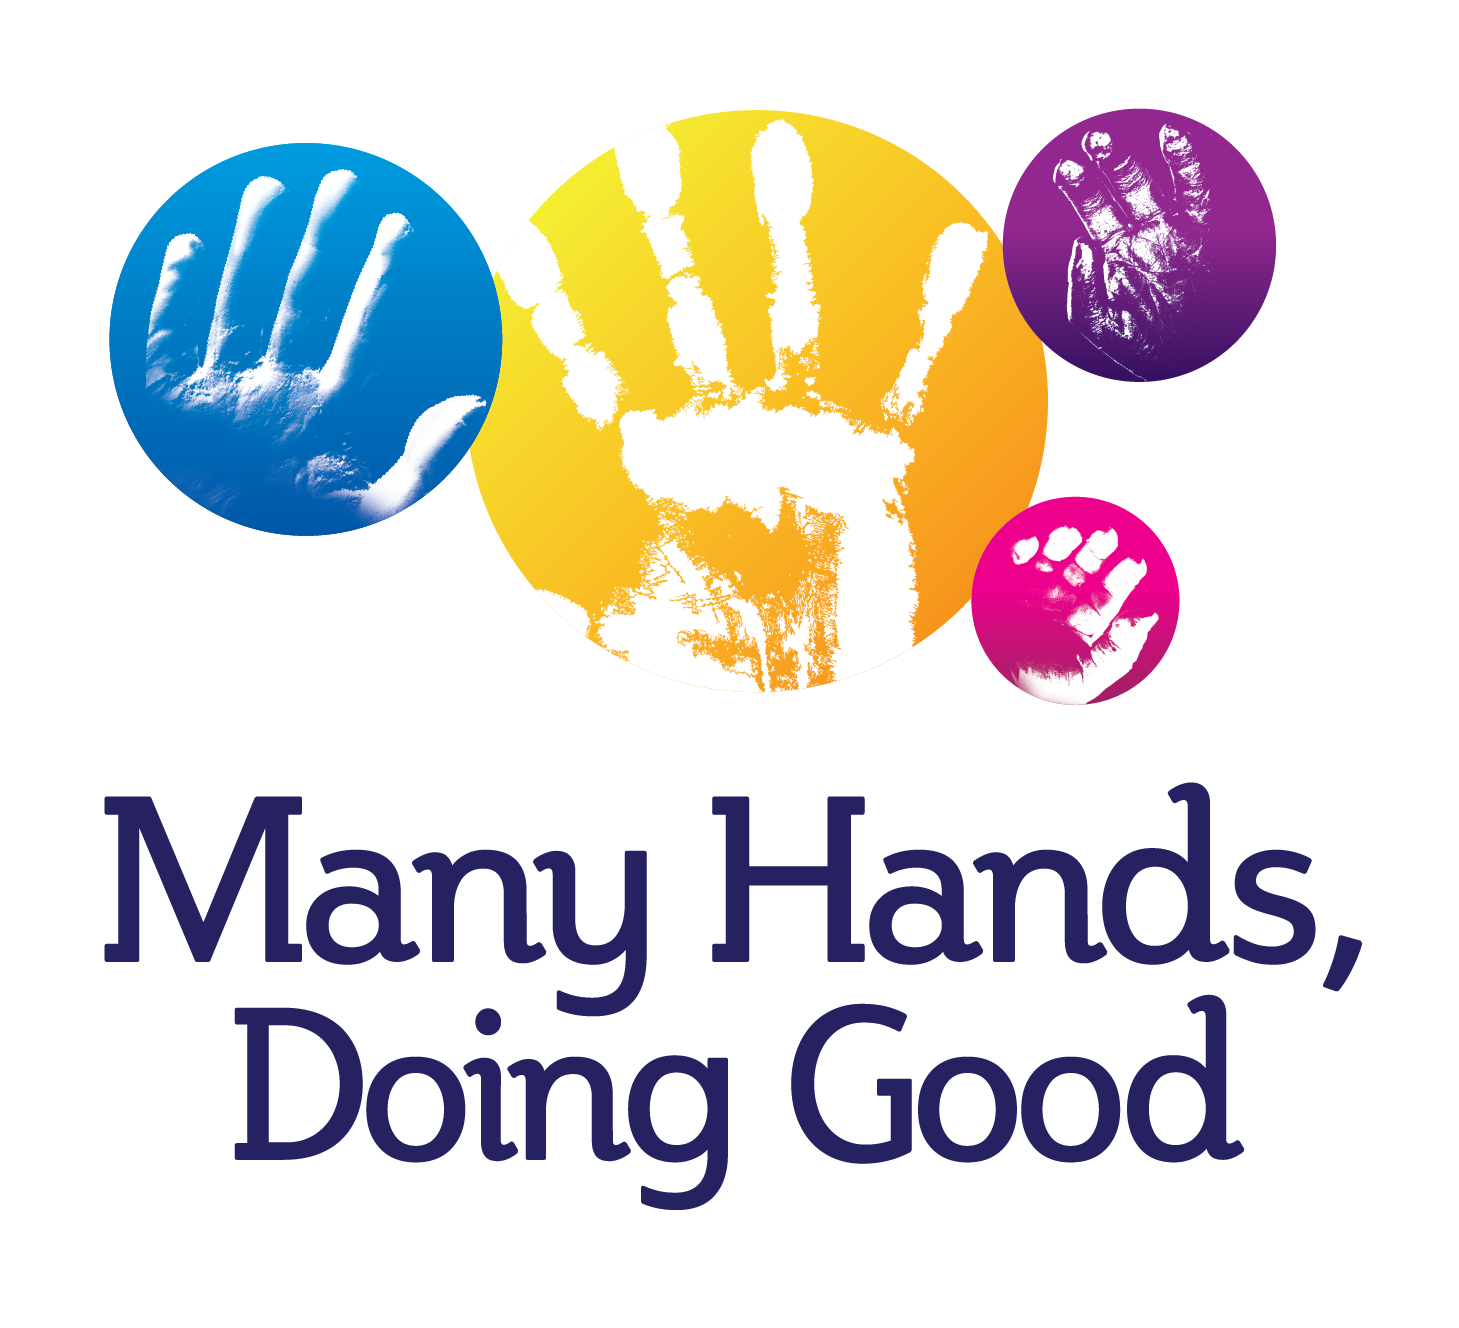 Many hands, doing good